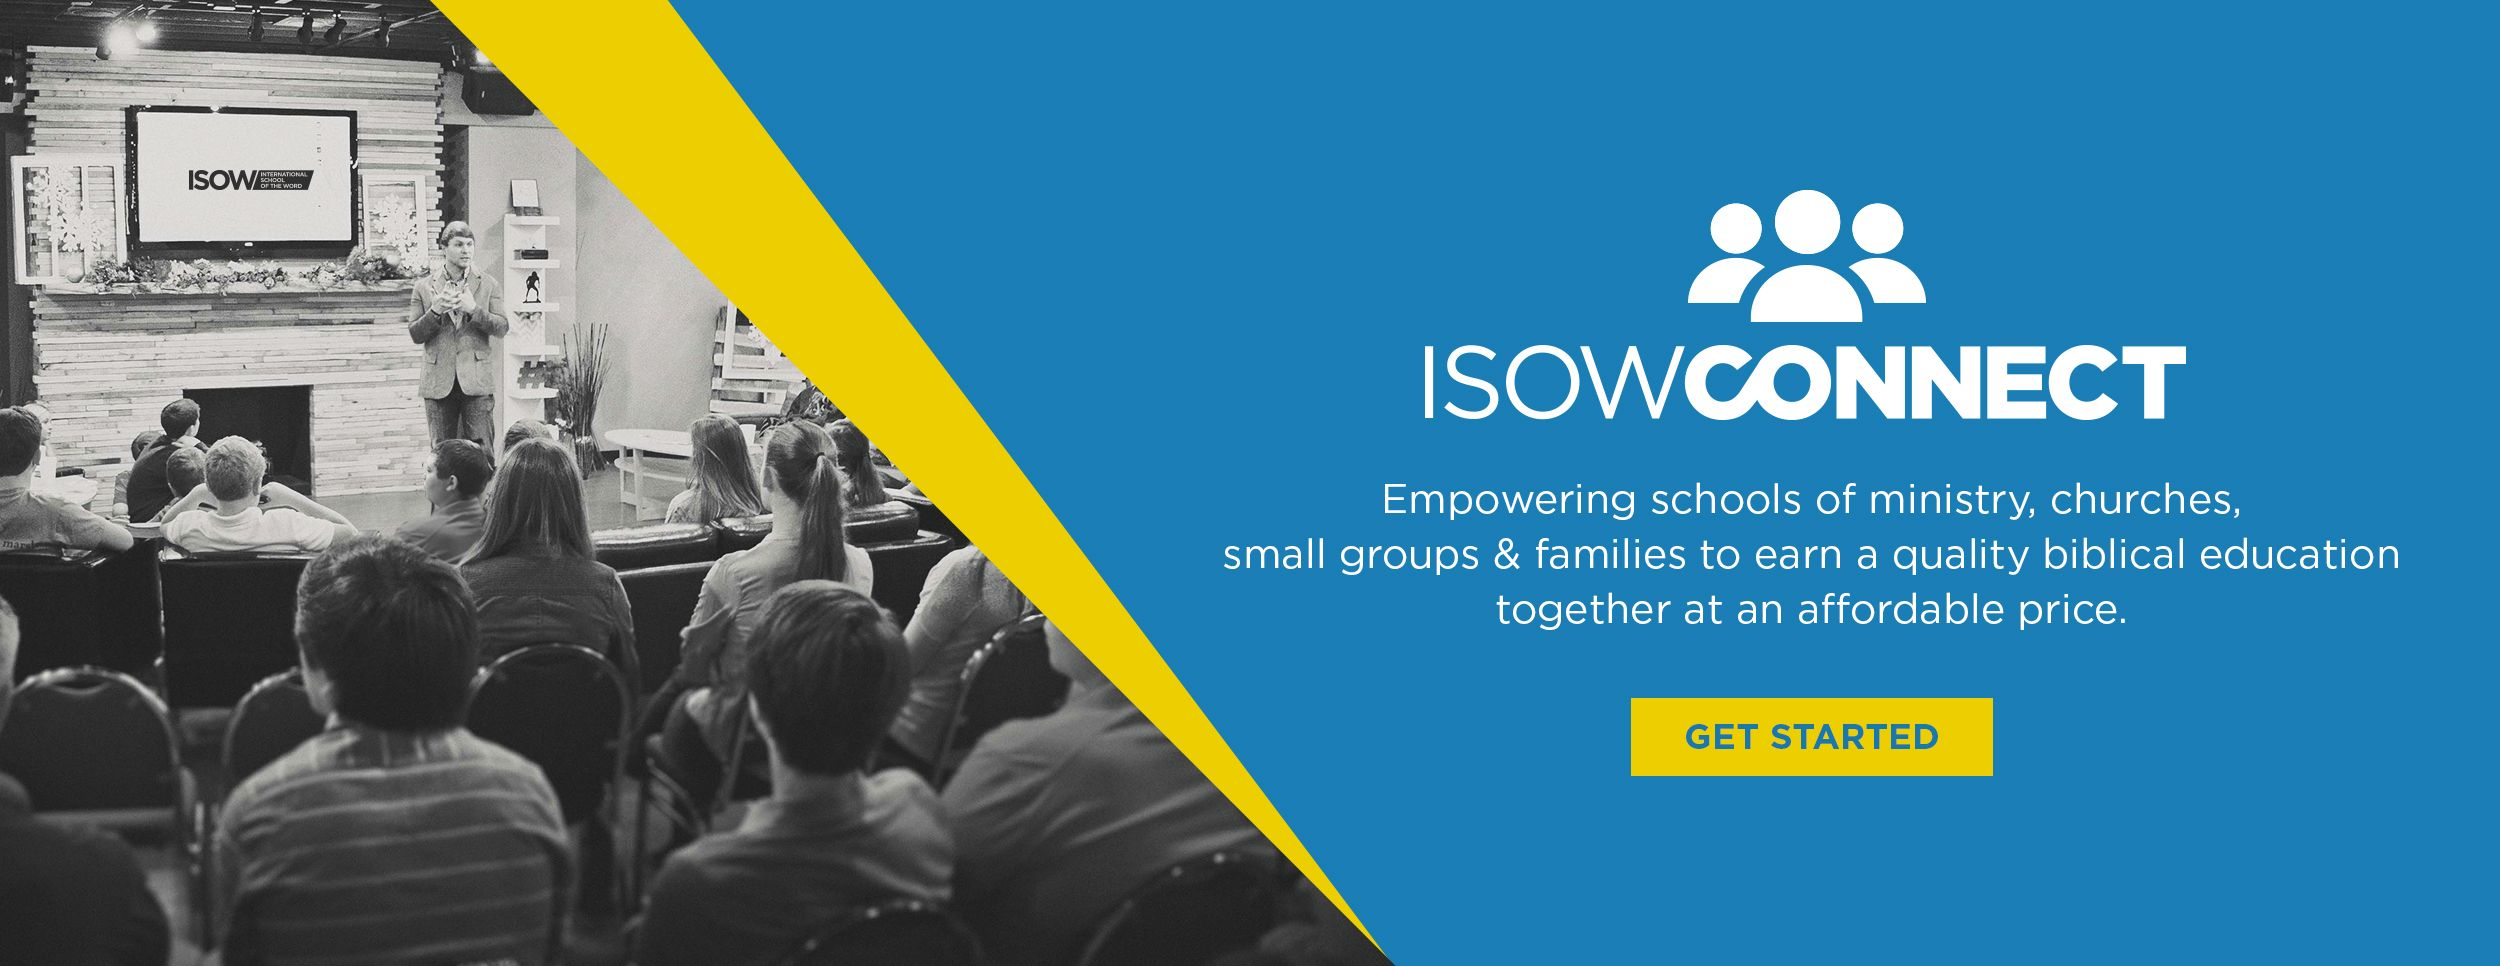 ISOW_Connect_ISOW_Homepage_Banner_v2-compressor